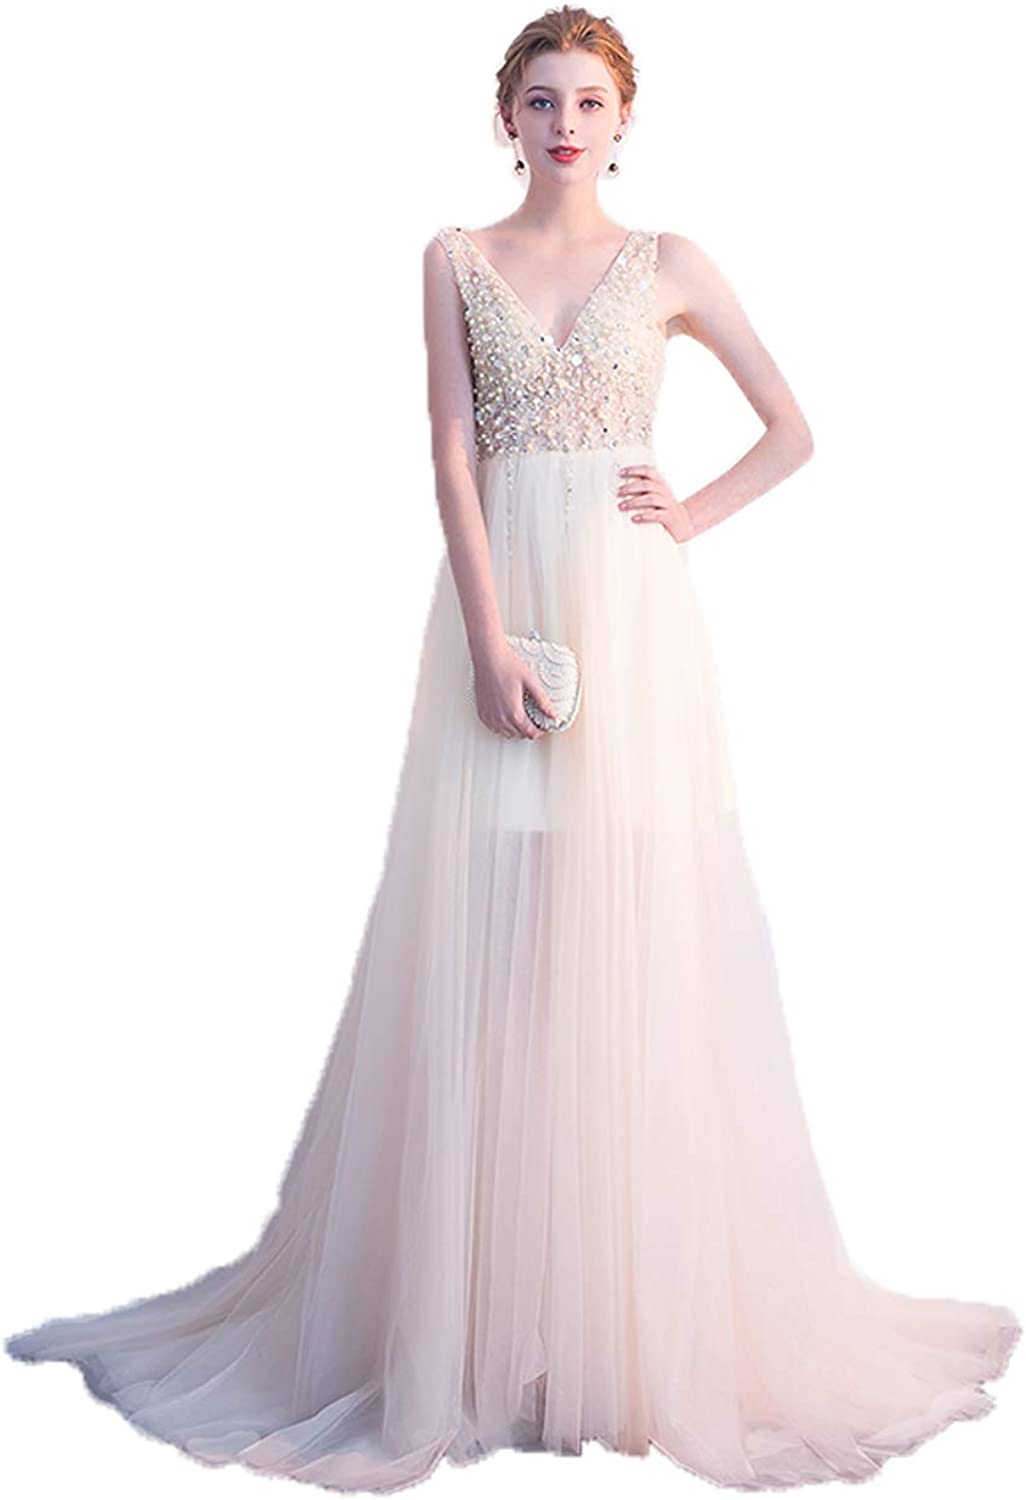 Huifany Women's Sexy Deep V Neck Prom Dress Sequins Beaded Tulle Long Evening Dresses